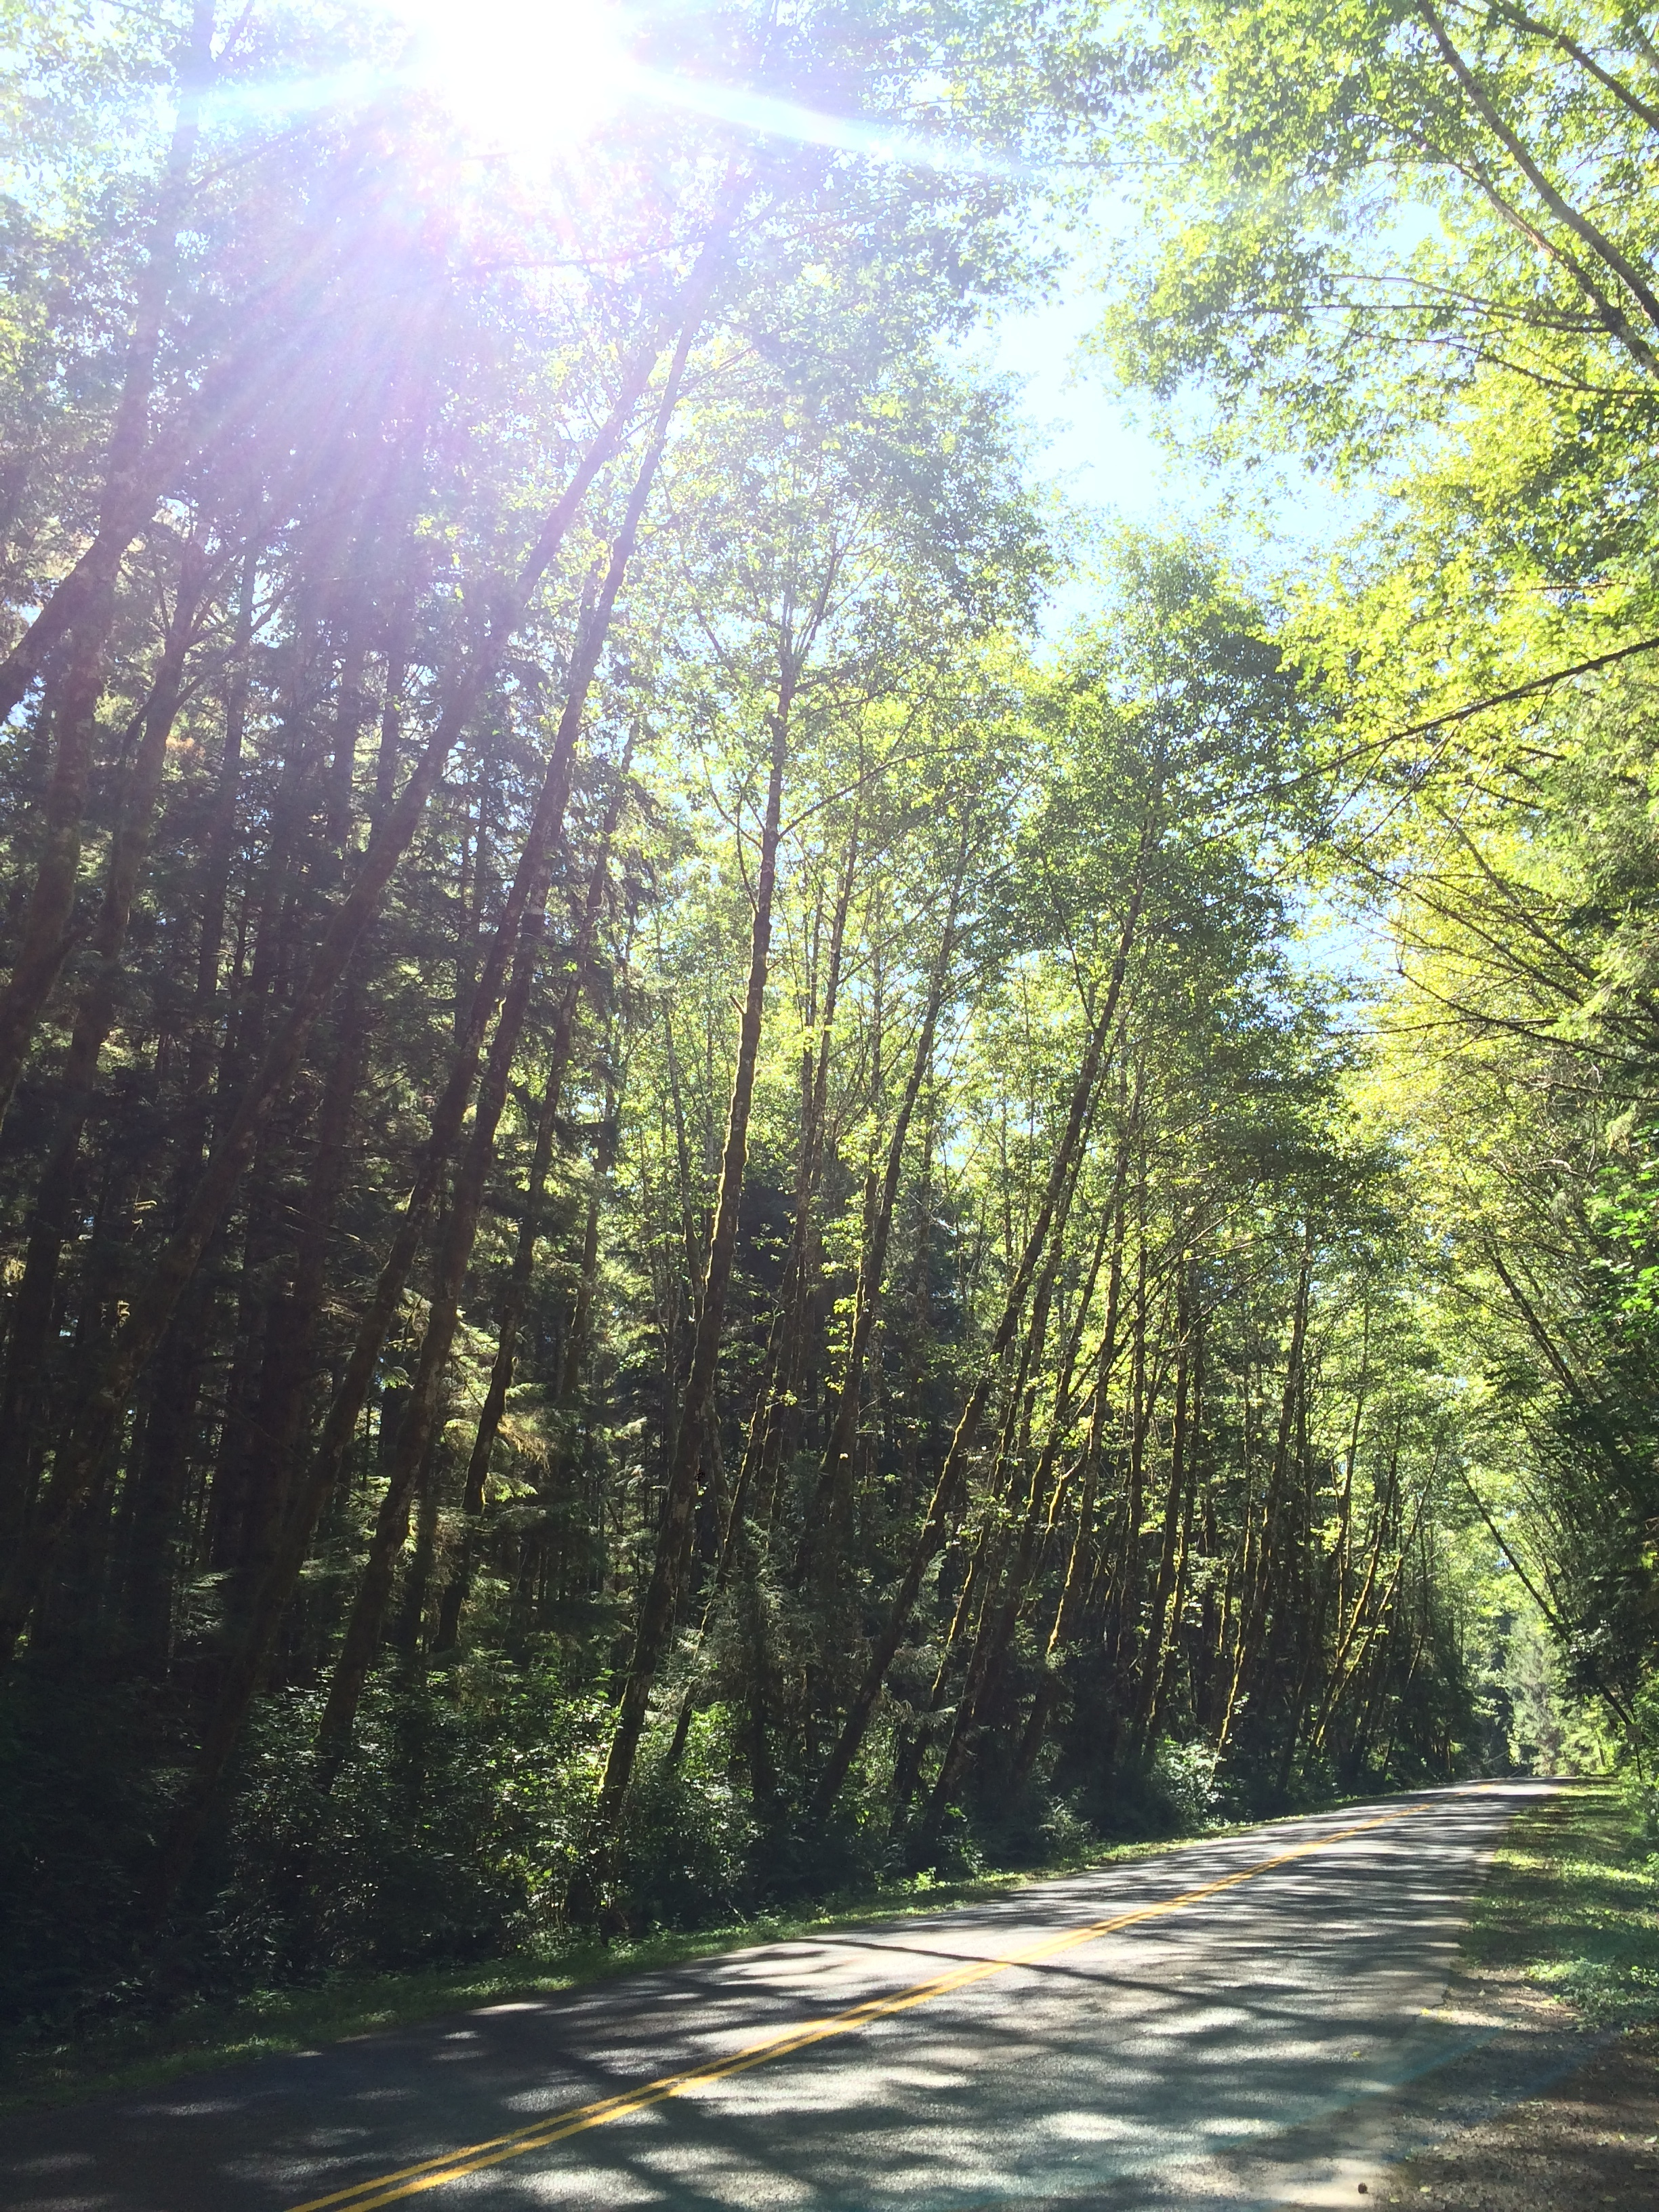 The Upper Hoh Road is also a scenic drive that should be enjoyed by visitors to Olympic National Park.